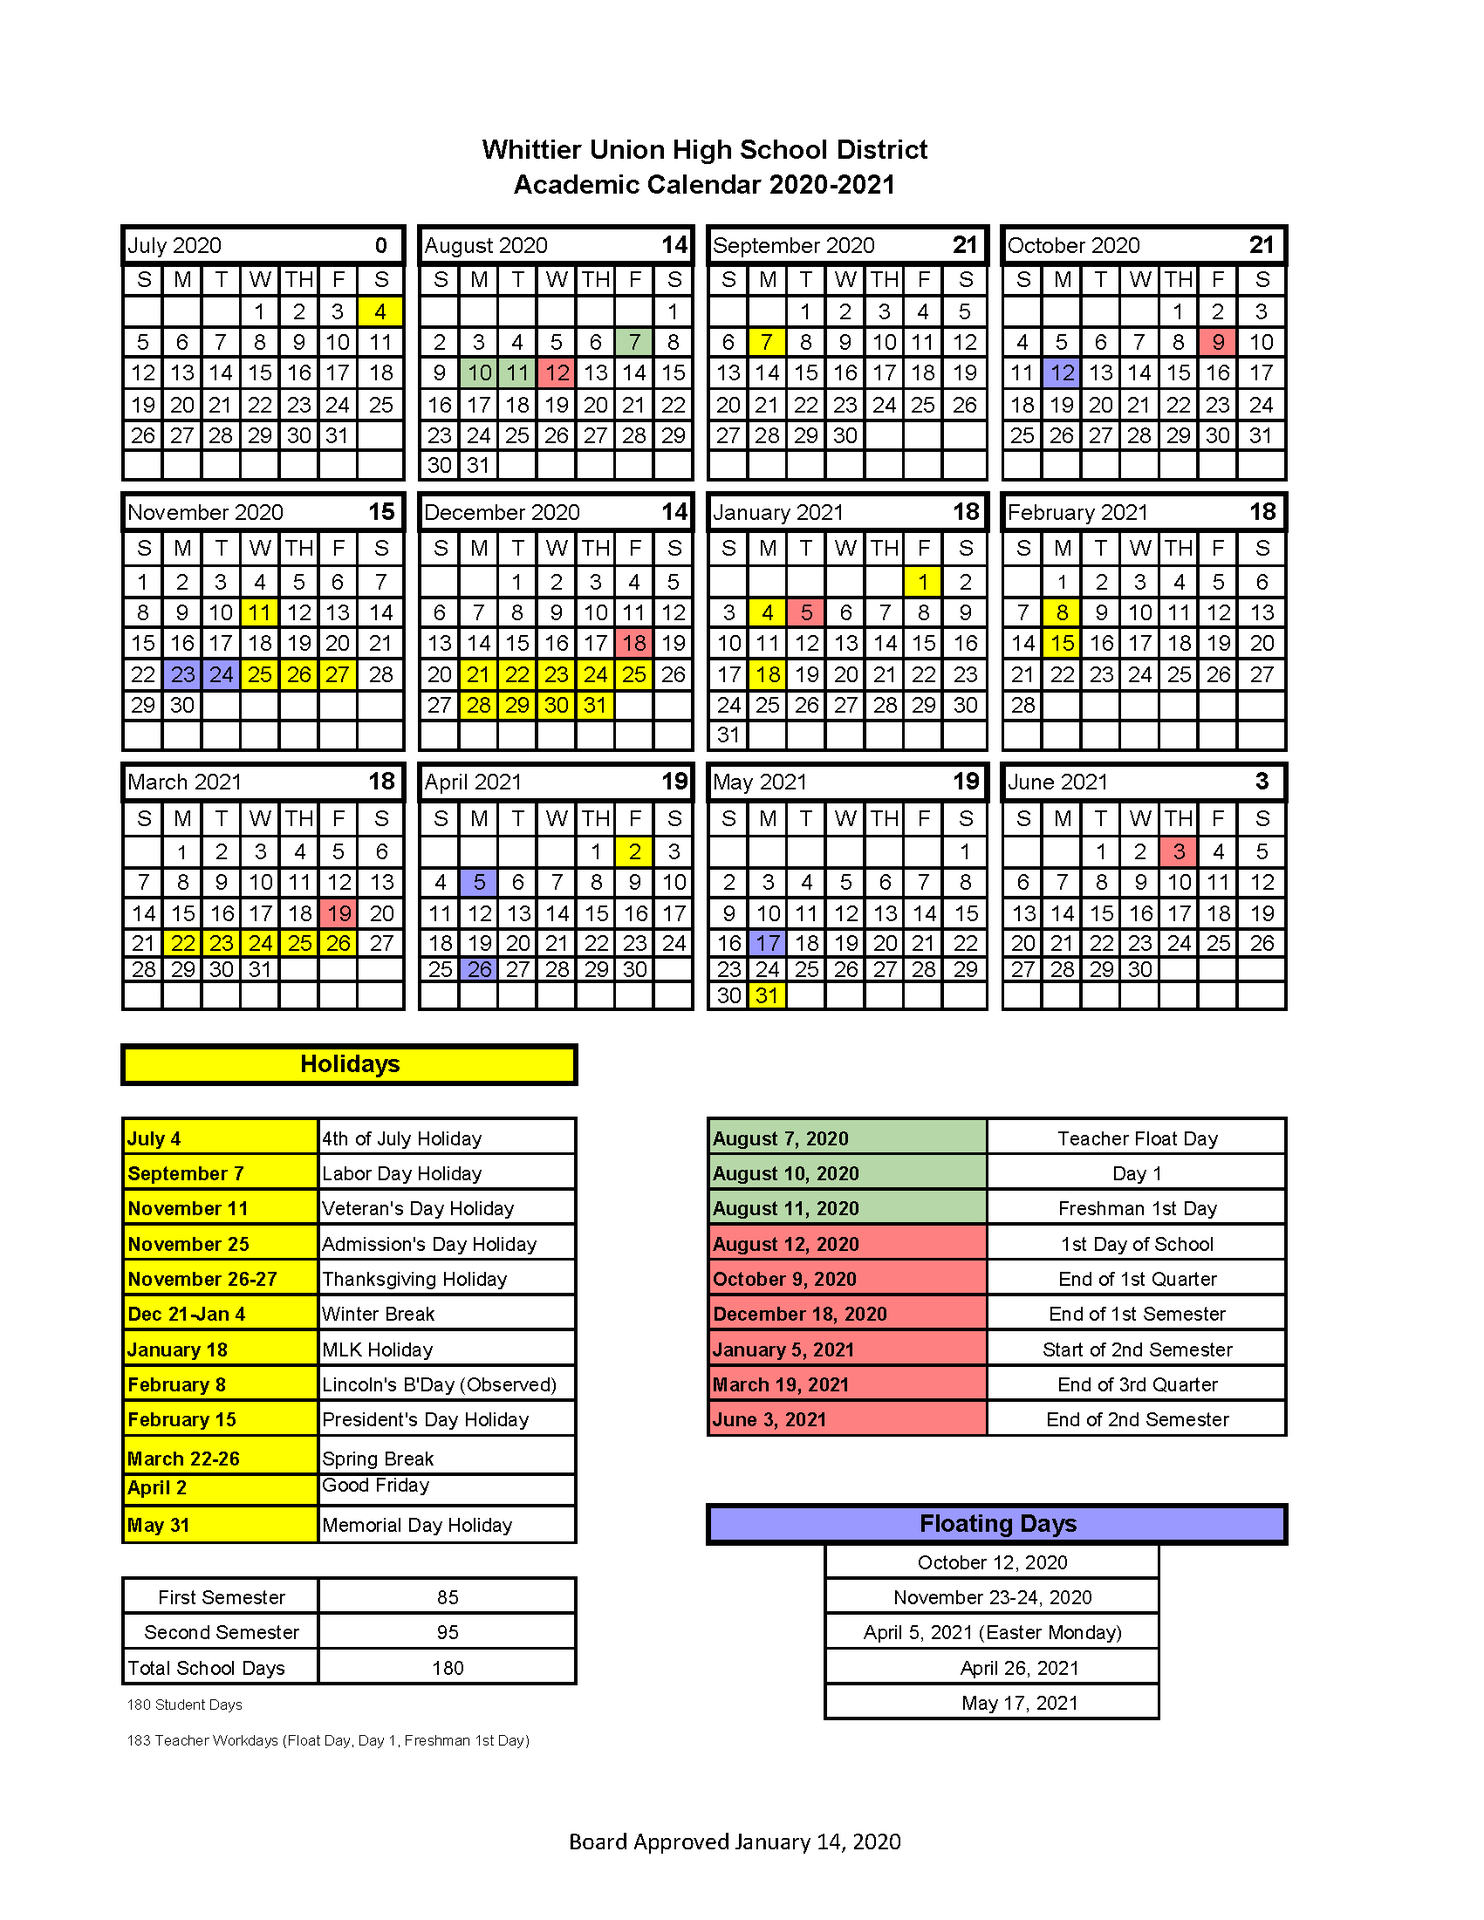 Wuhsd Academic Calendars – District Information – Whittier For Corona Norco Usd School Calendar 2021